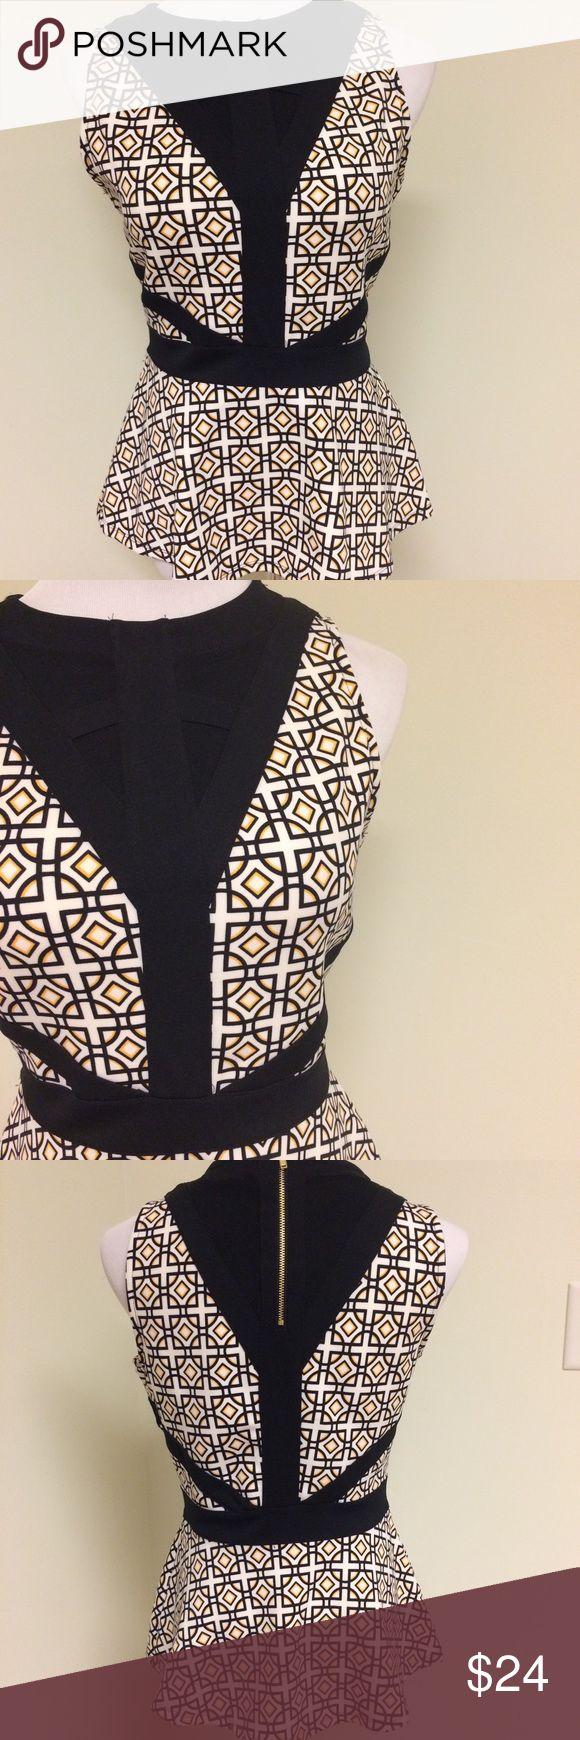 NWT Geometric Patterned Peplum Top Sleeveless Peplum Top with black, white, and yellow geometric pattern. Black lattice type design on the bodice with sheer Overlay. Similar design in the back. Back zipper is gold toned. Worthington Tops